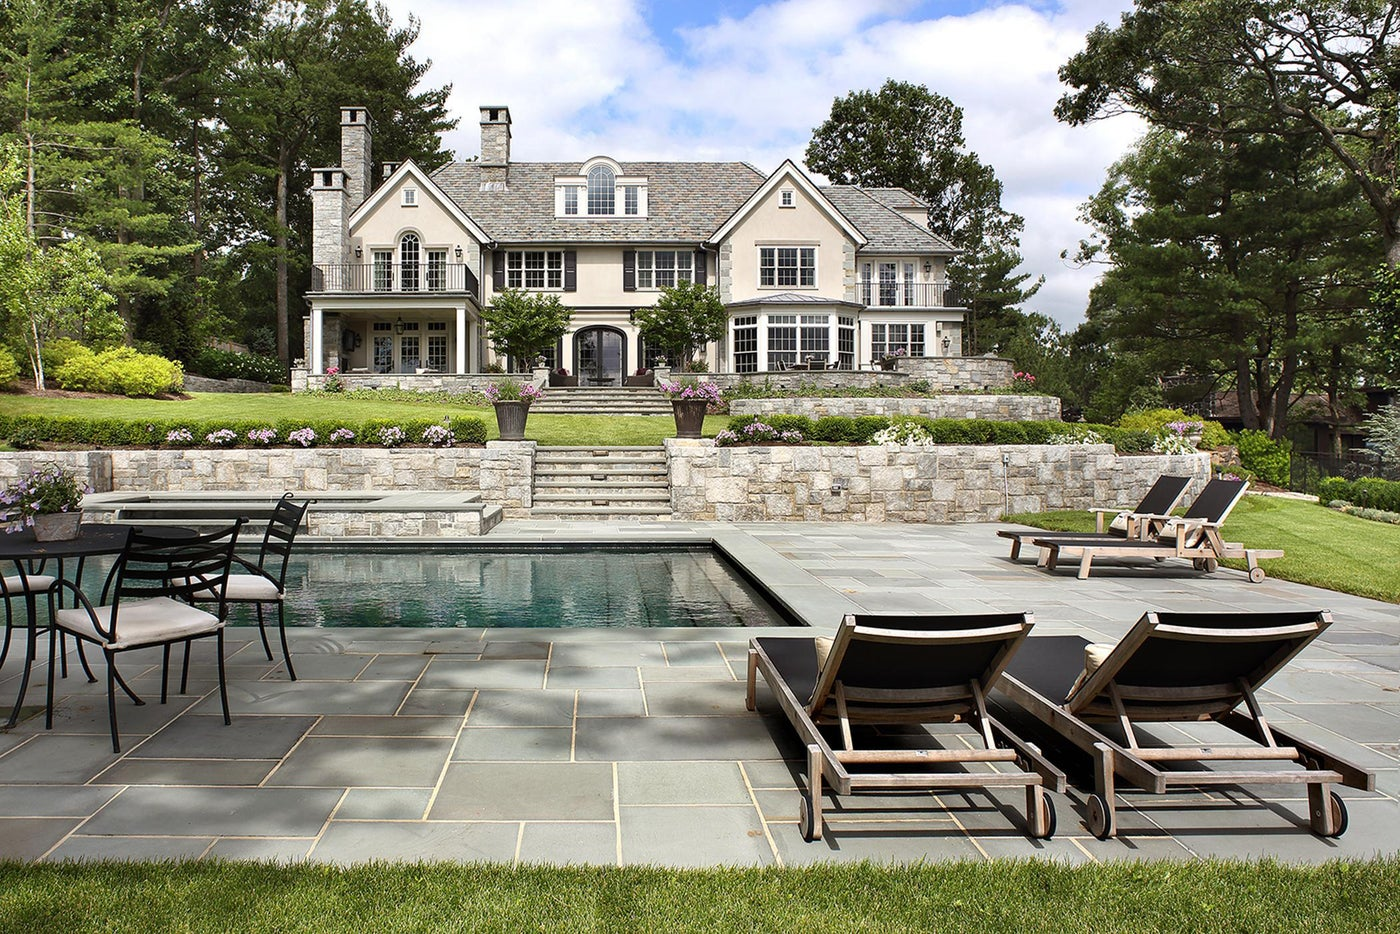 Exterior Oasis with pool, stone patio and city views